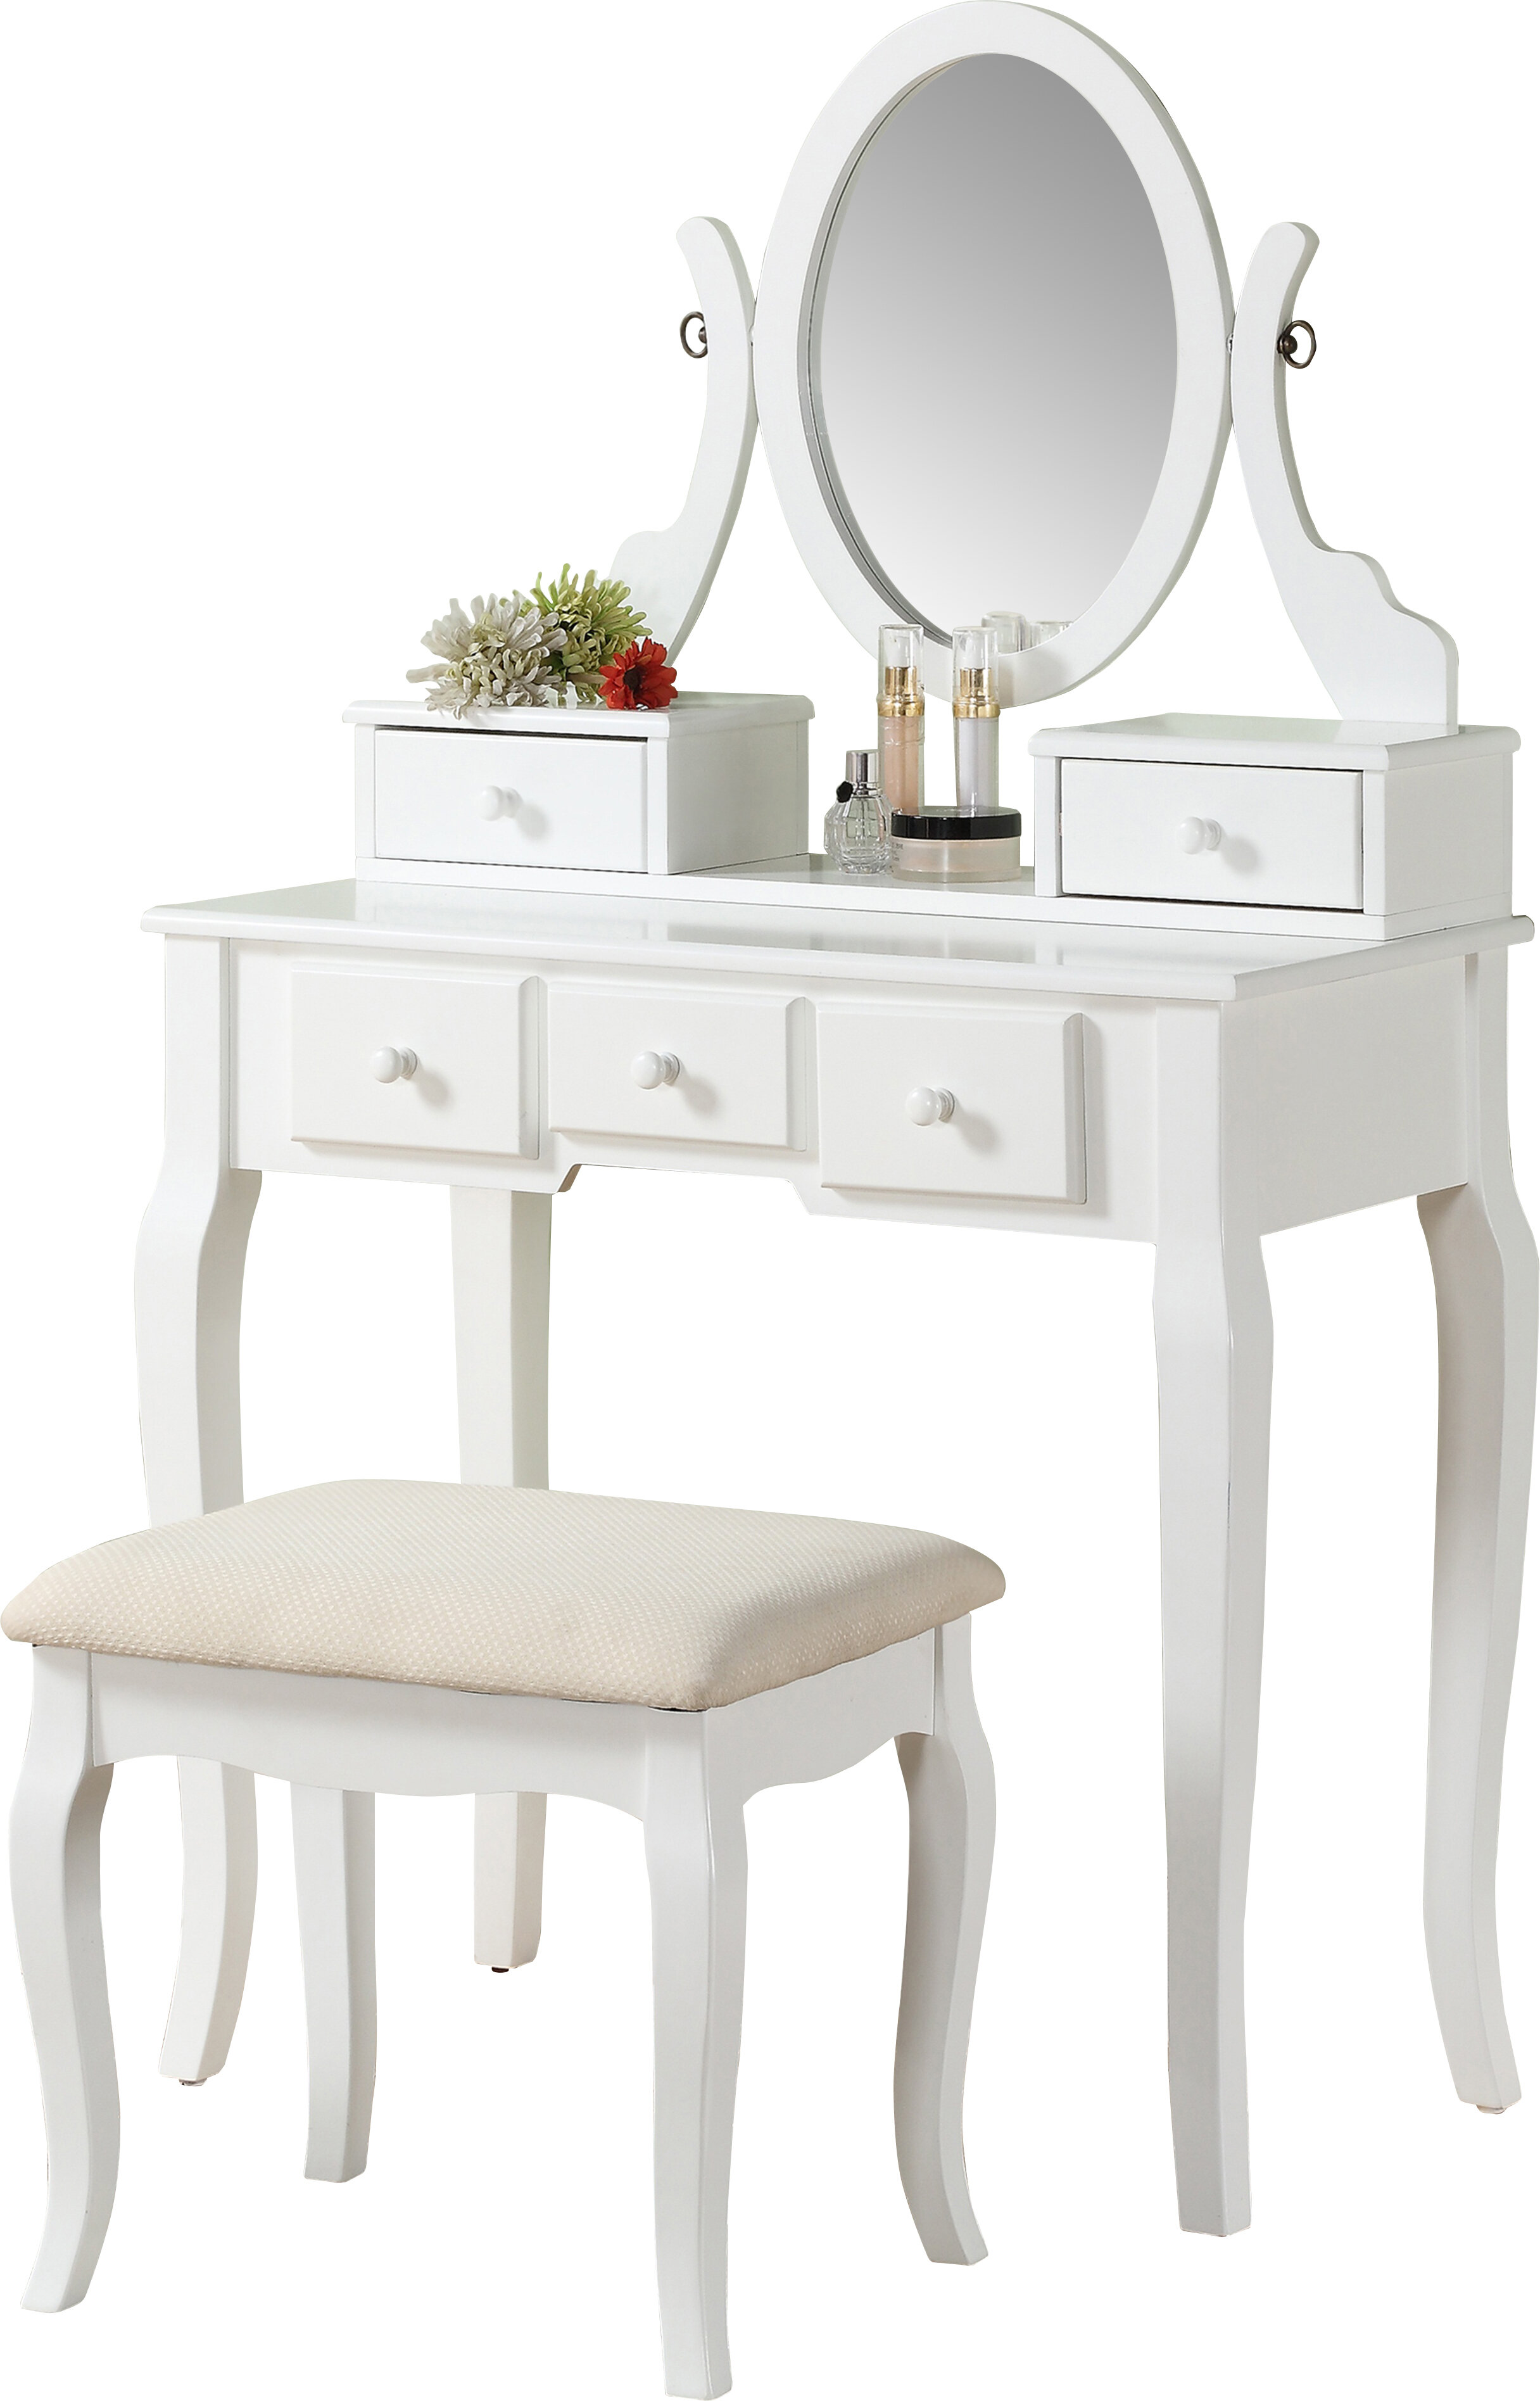 Makeup Vanity.Zeke Wood Makeup Vanity Set With Mirror